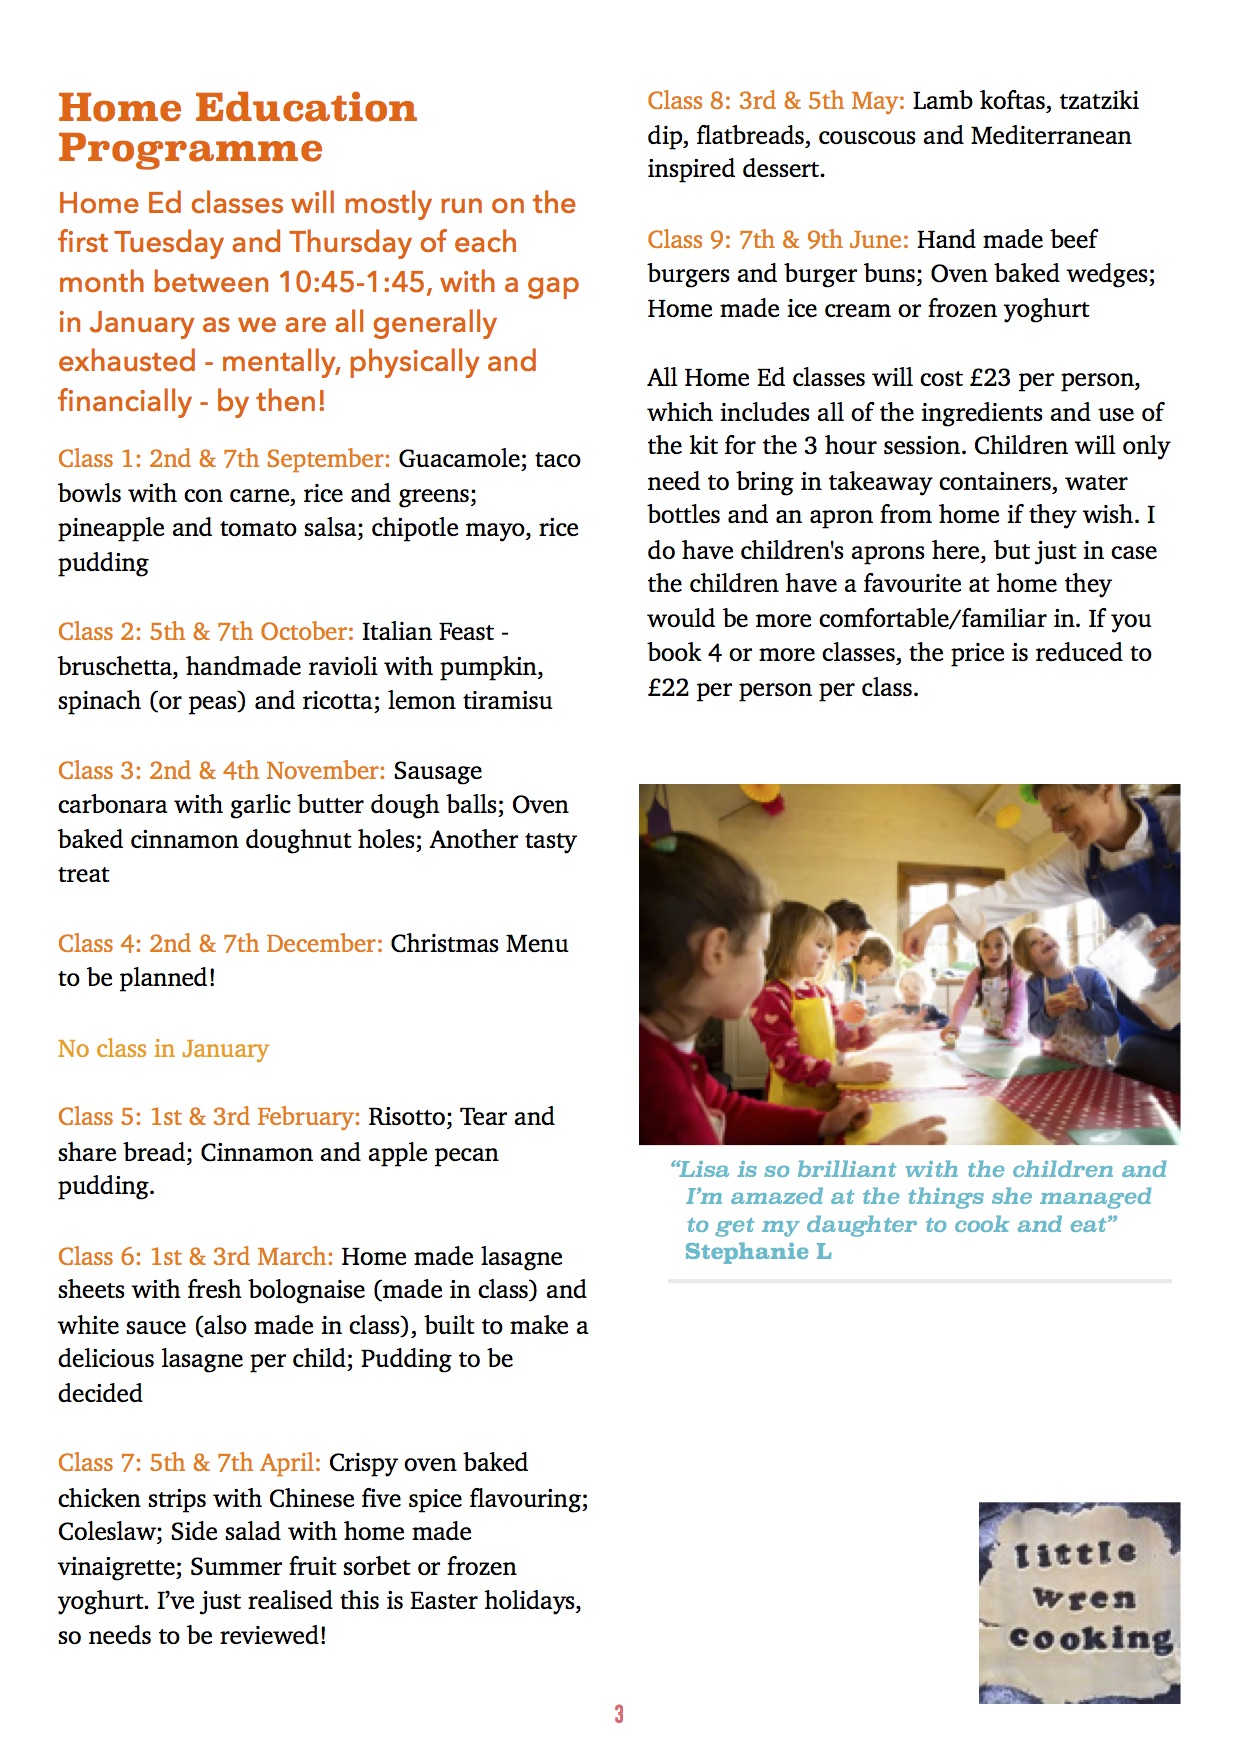 Children's Home Ed Cooking Class ages 7+ workshop mentored by Lisa James